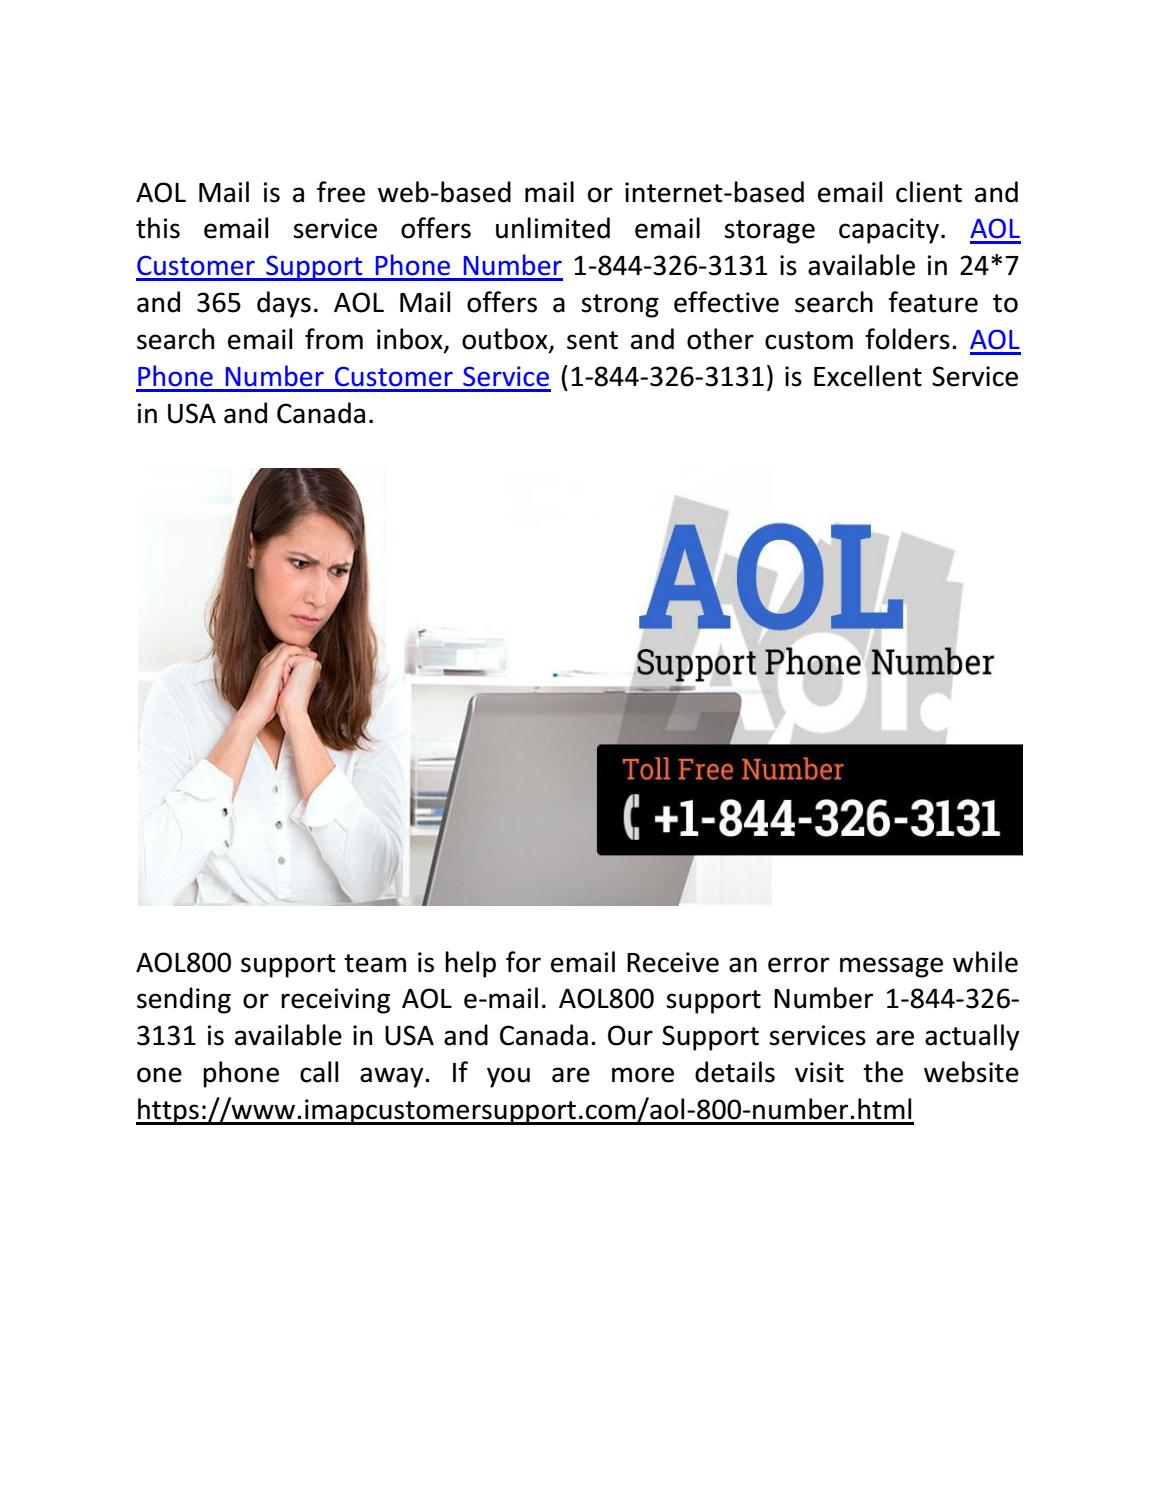 need help aol phone number customer service @1-844-326-3131 in usa